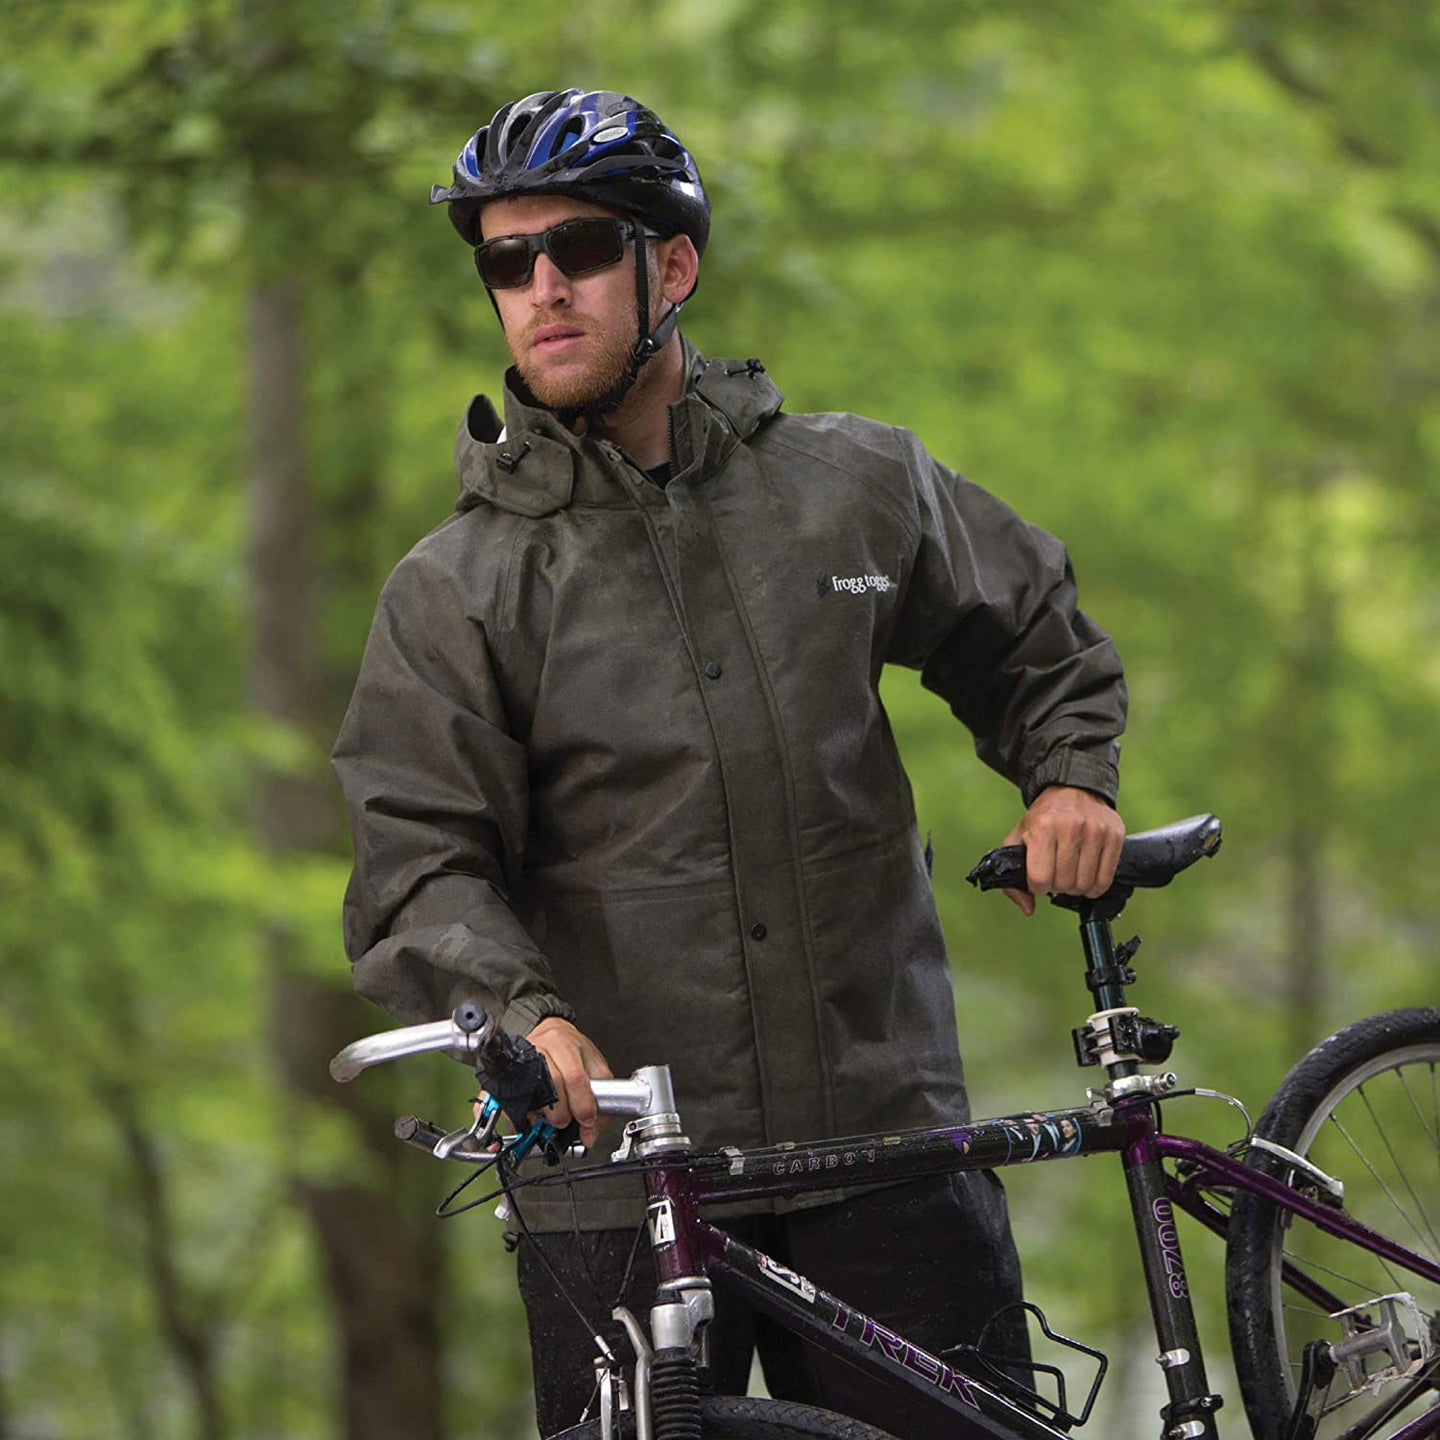 Guy in a helmet and sunglasses holding a bicycle